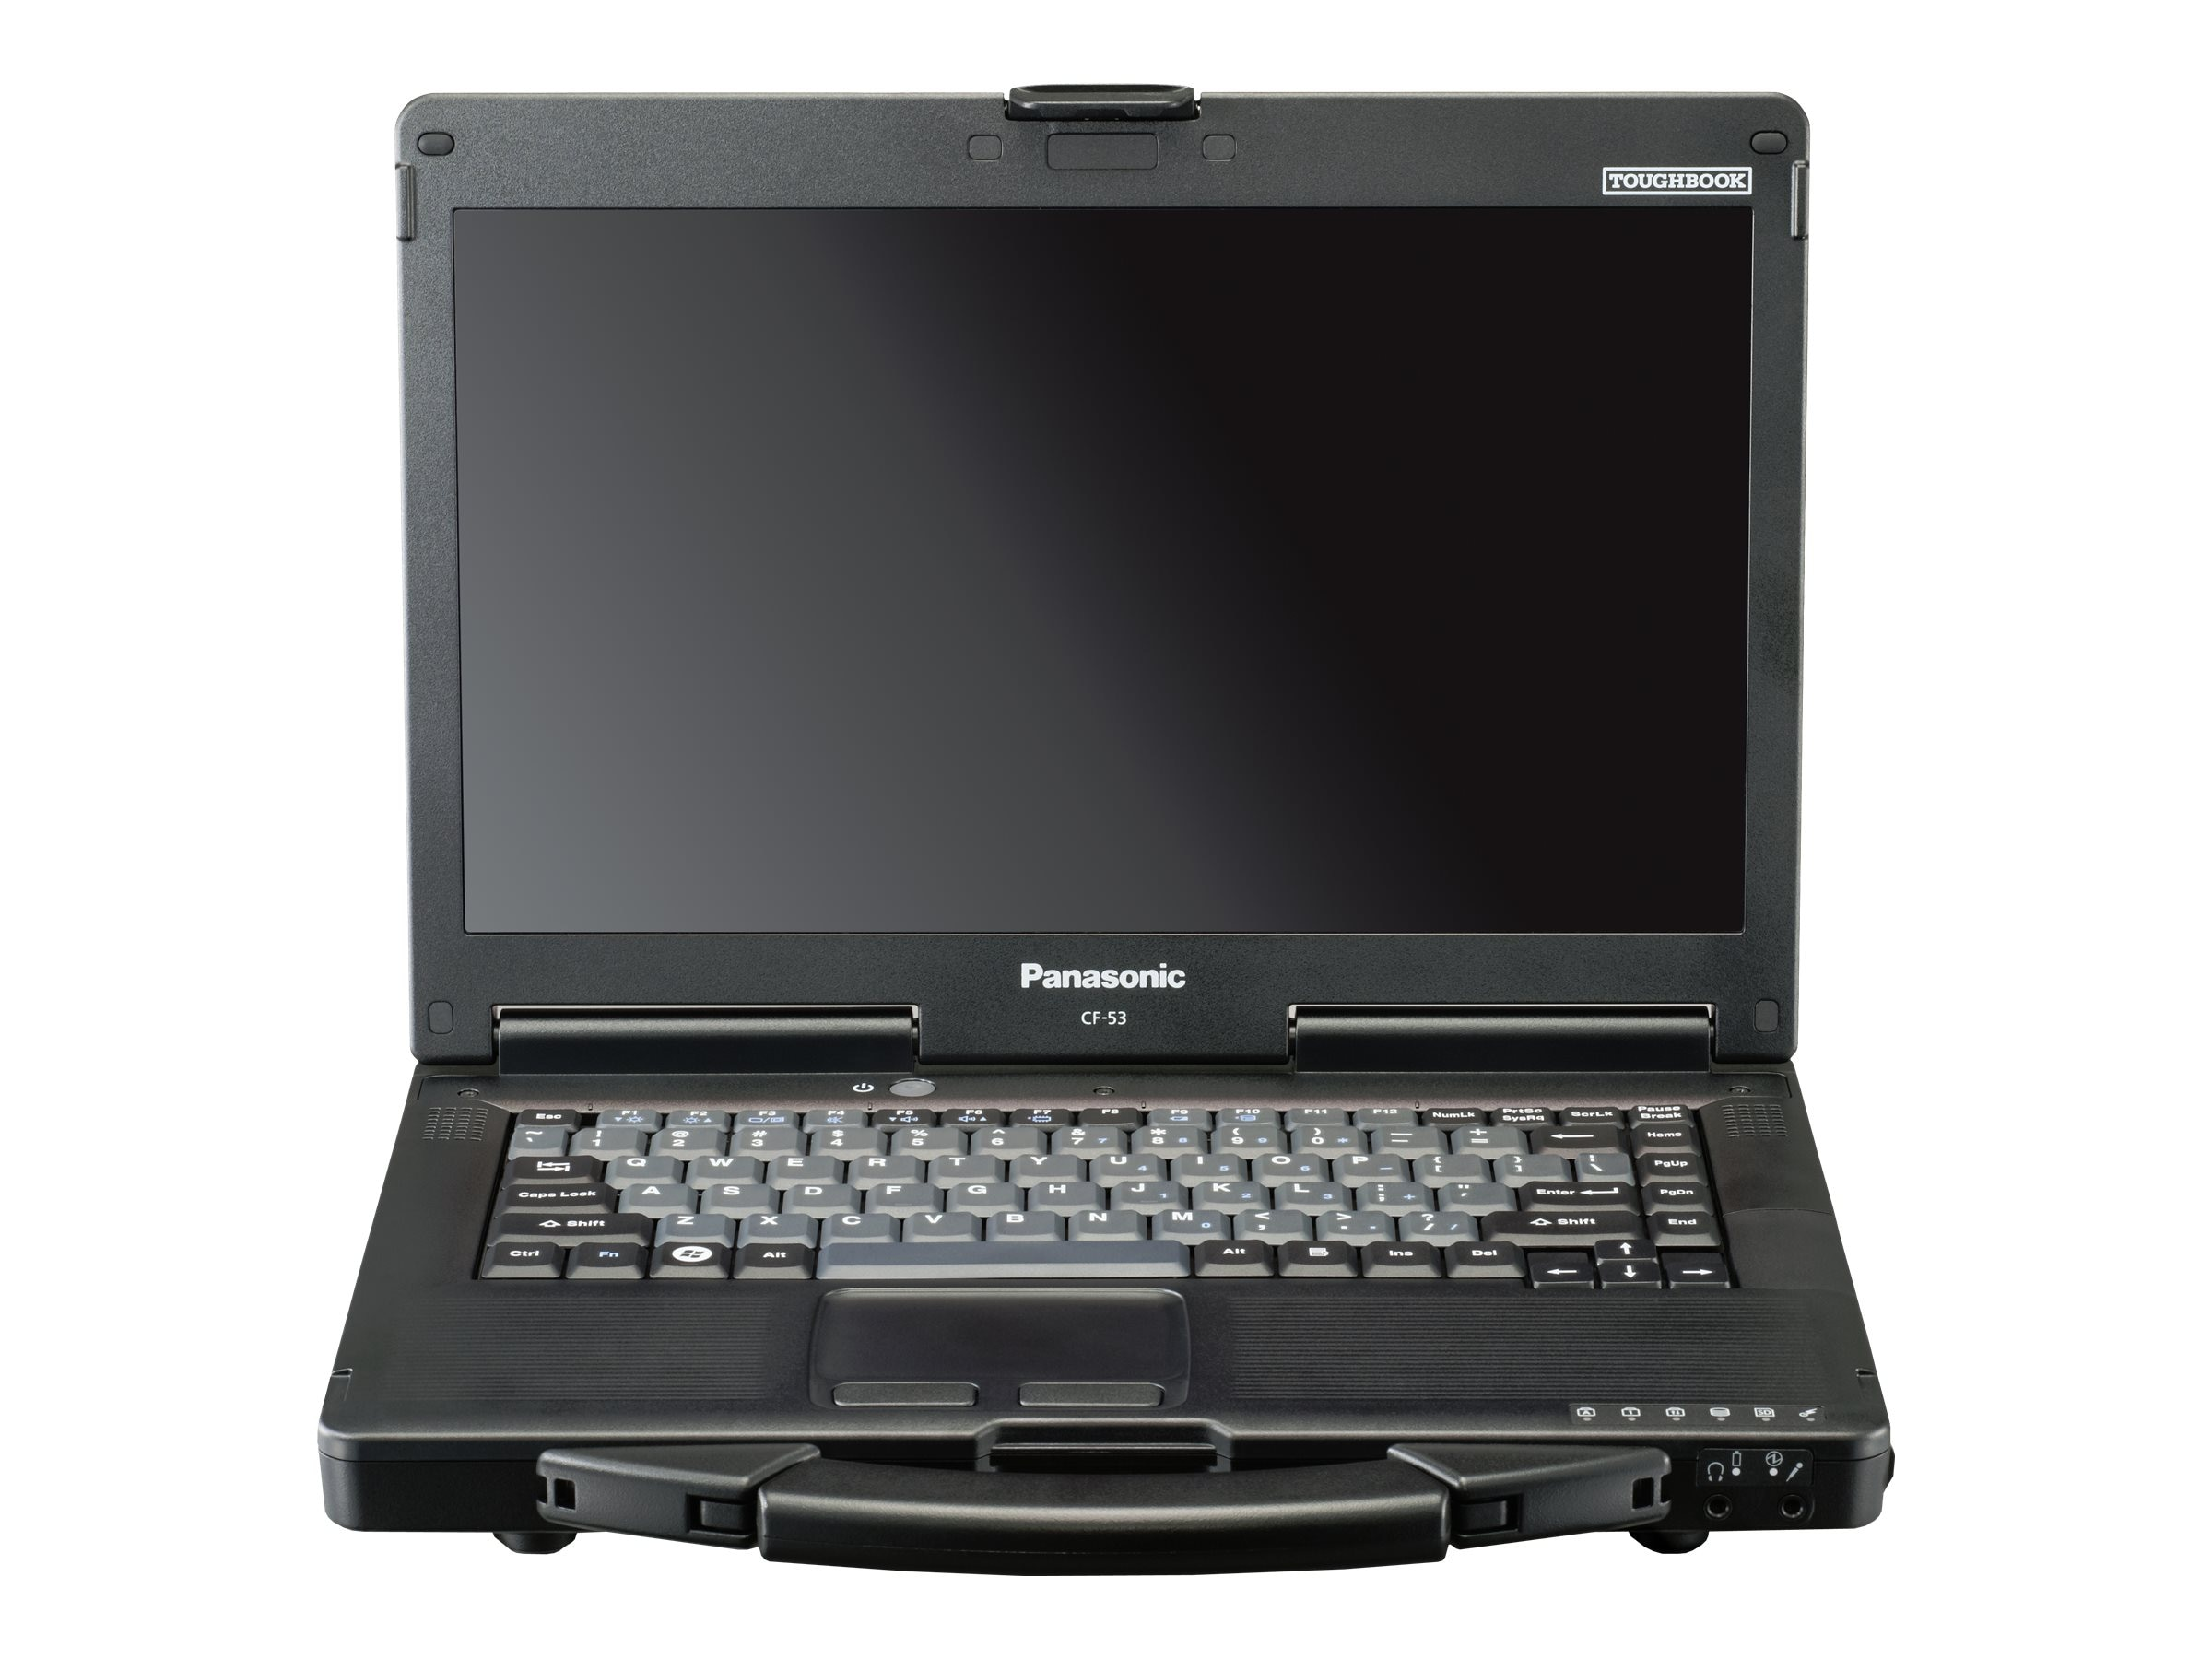 Panasonic Toughbook 53 2GHz Core i5 14in display, CF-532UVCLTM